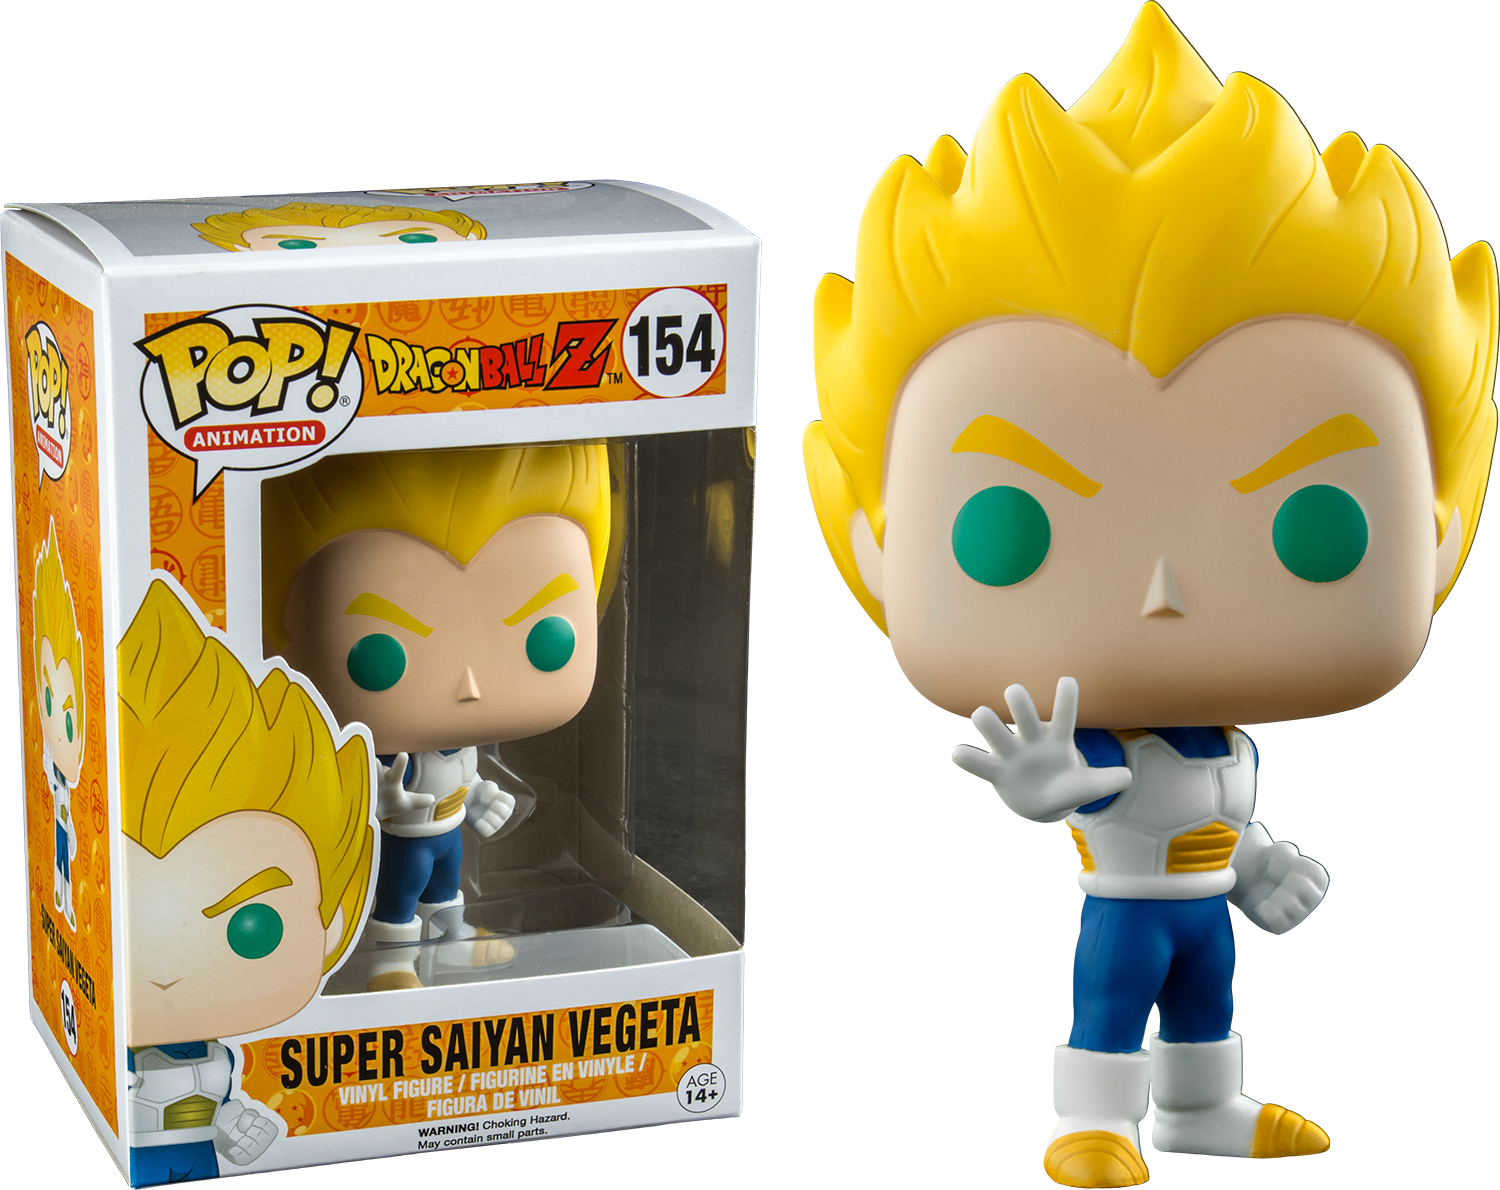 Dragon Ball Z - Vegeta (Super Saiyan) - Pop! Vinyl Figure image